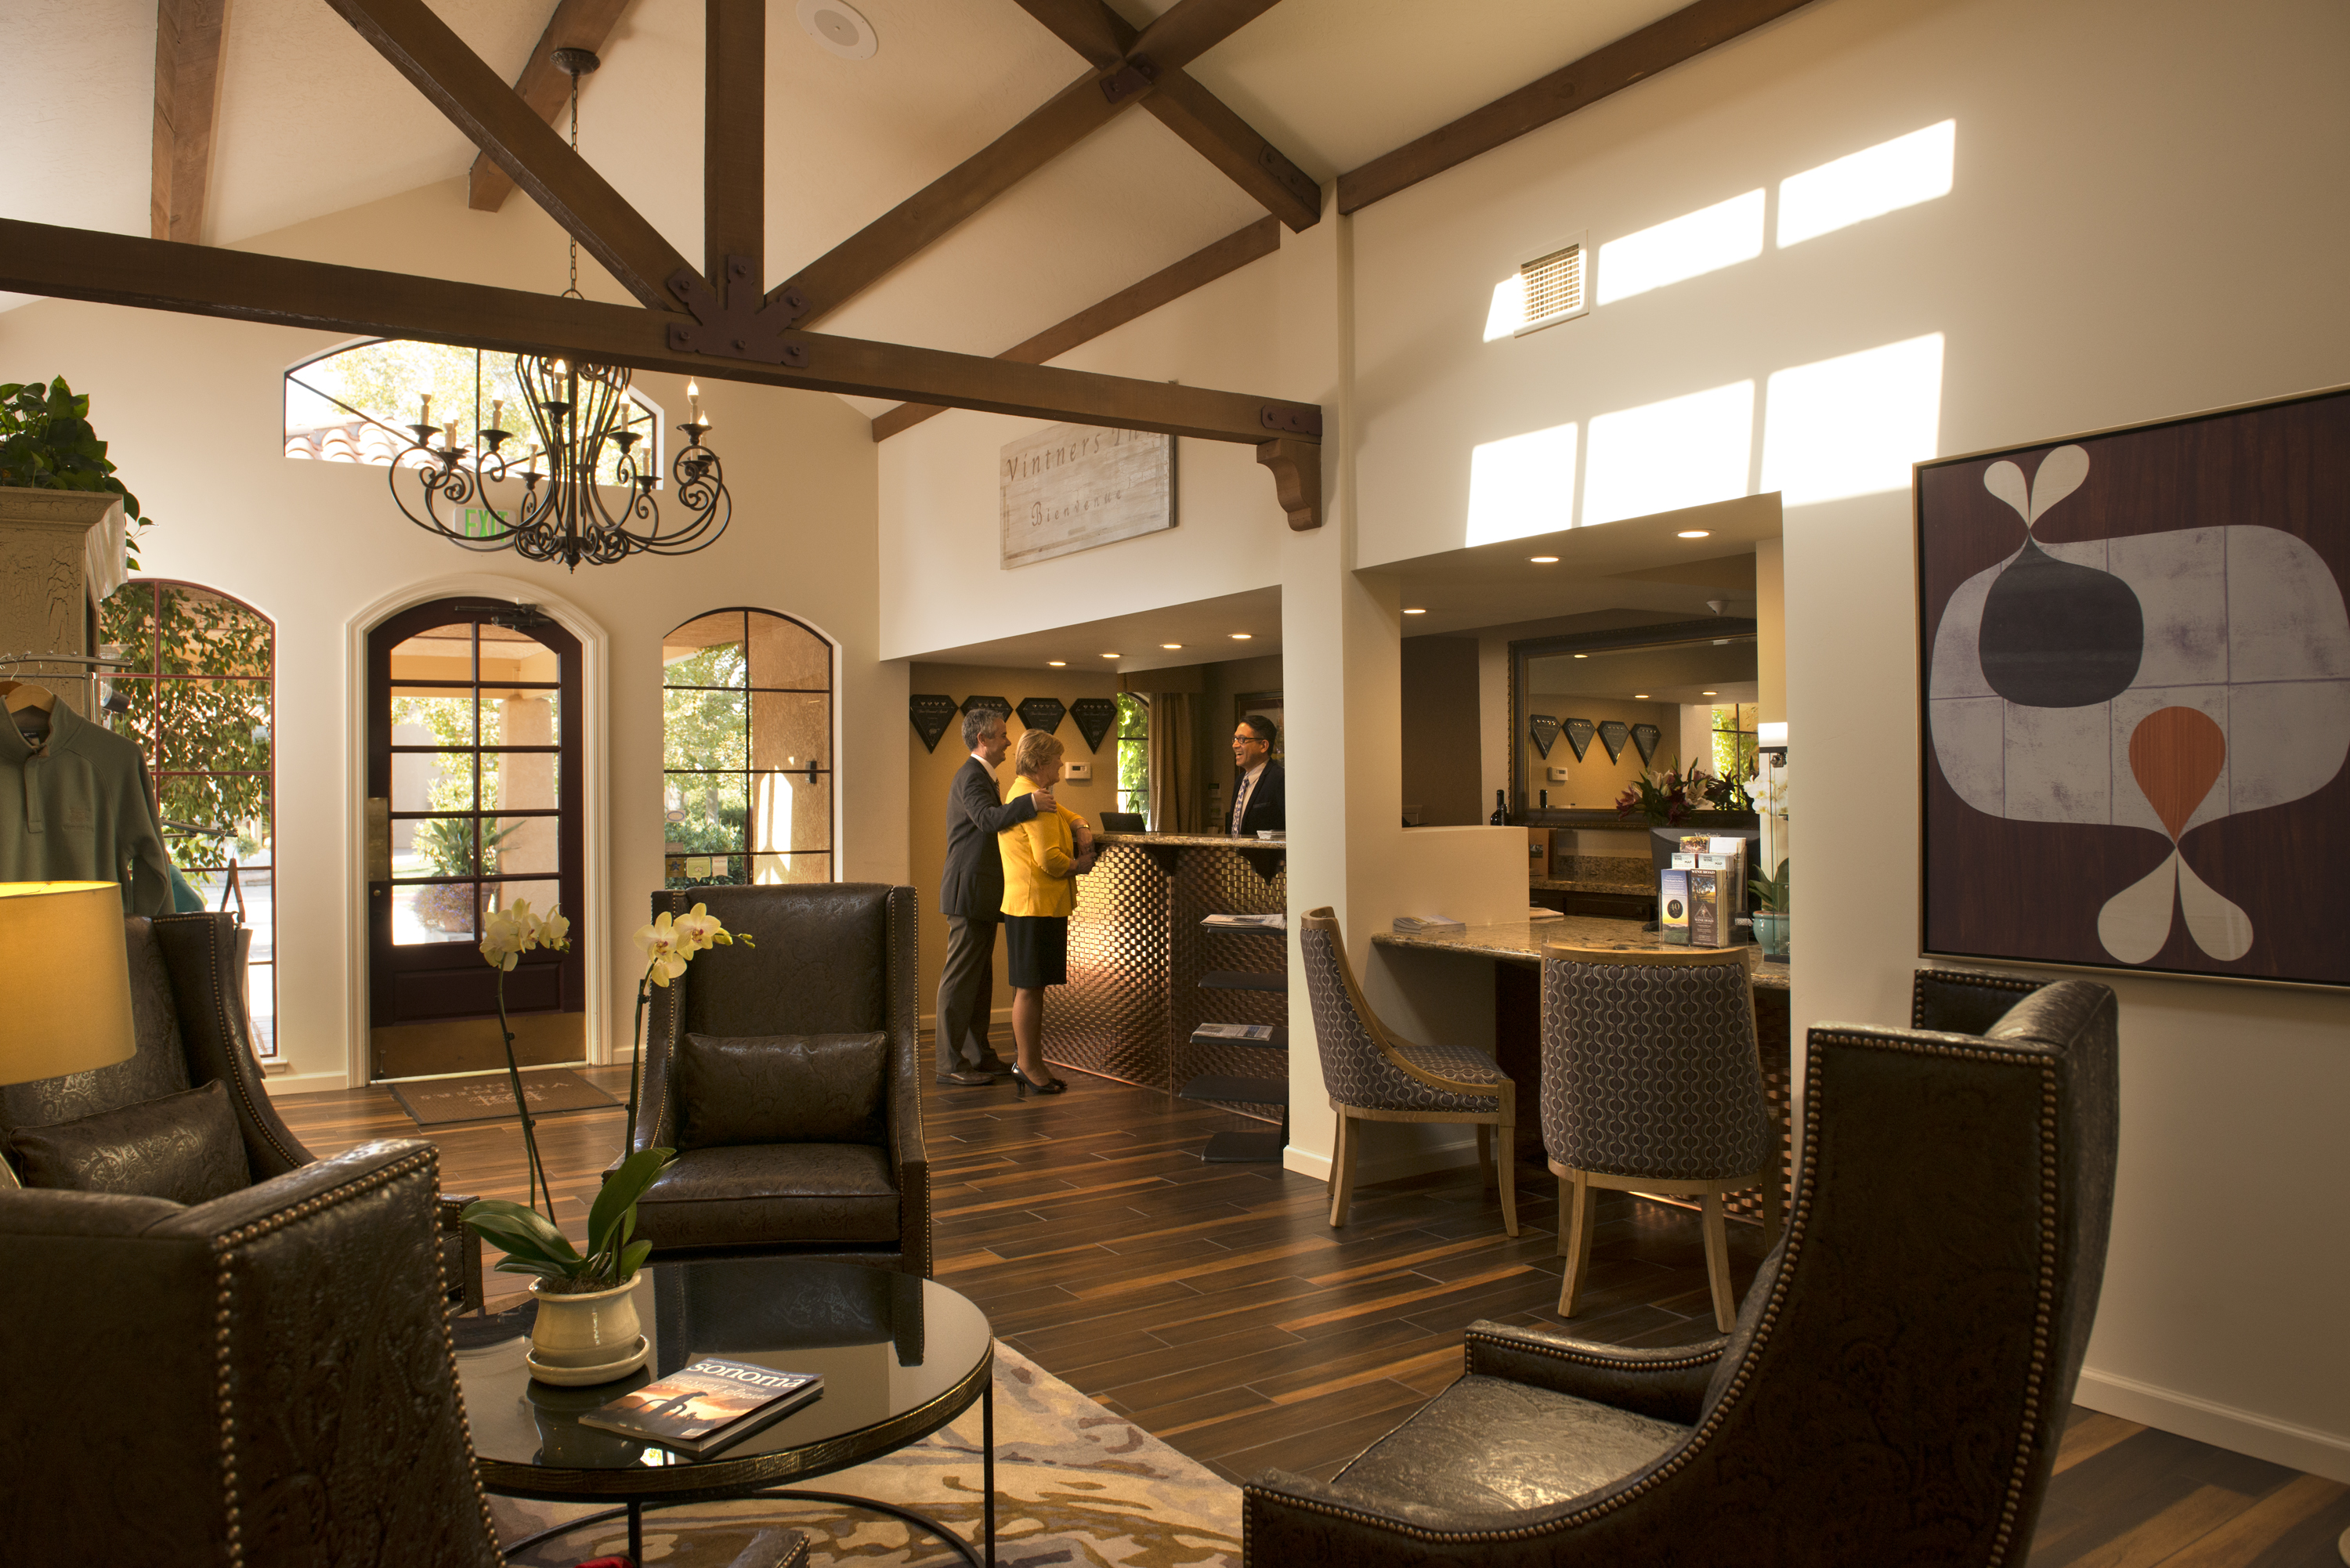 Stay in luxurious Vintners Inn in Sonoma County, California